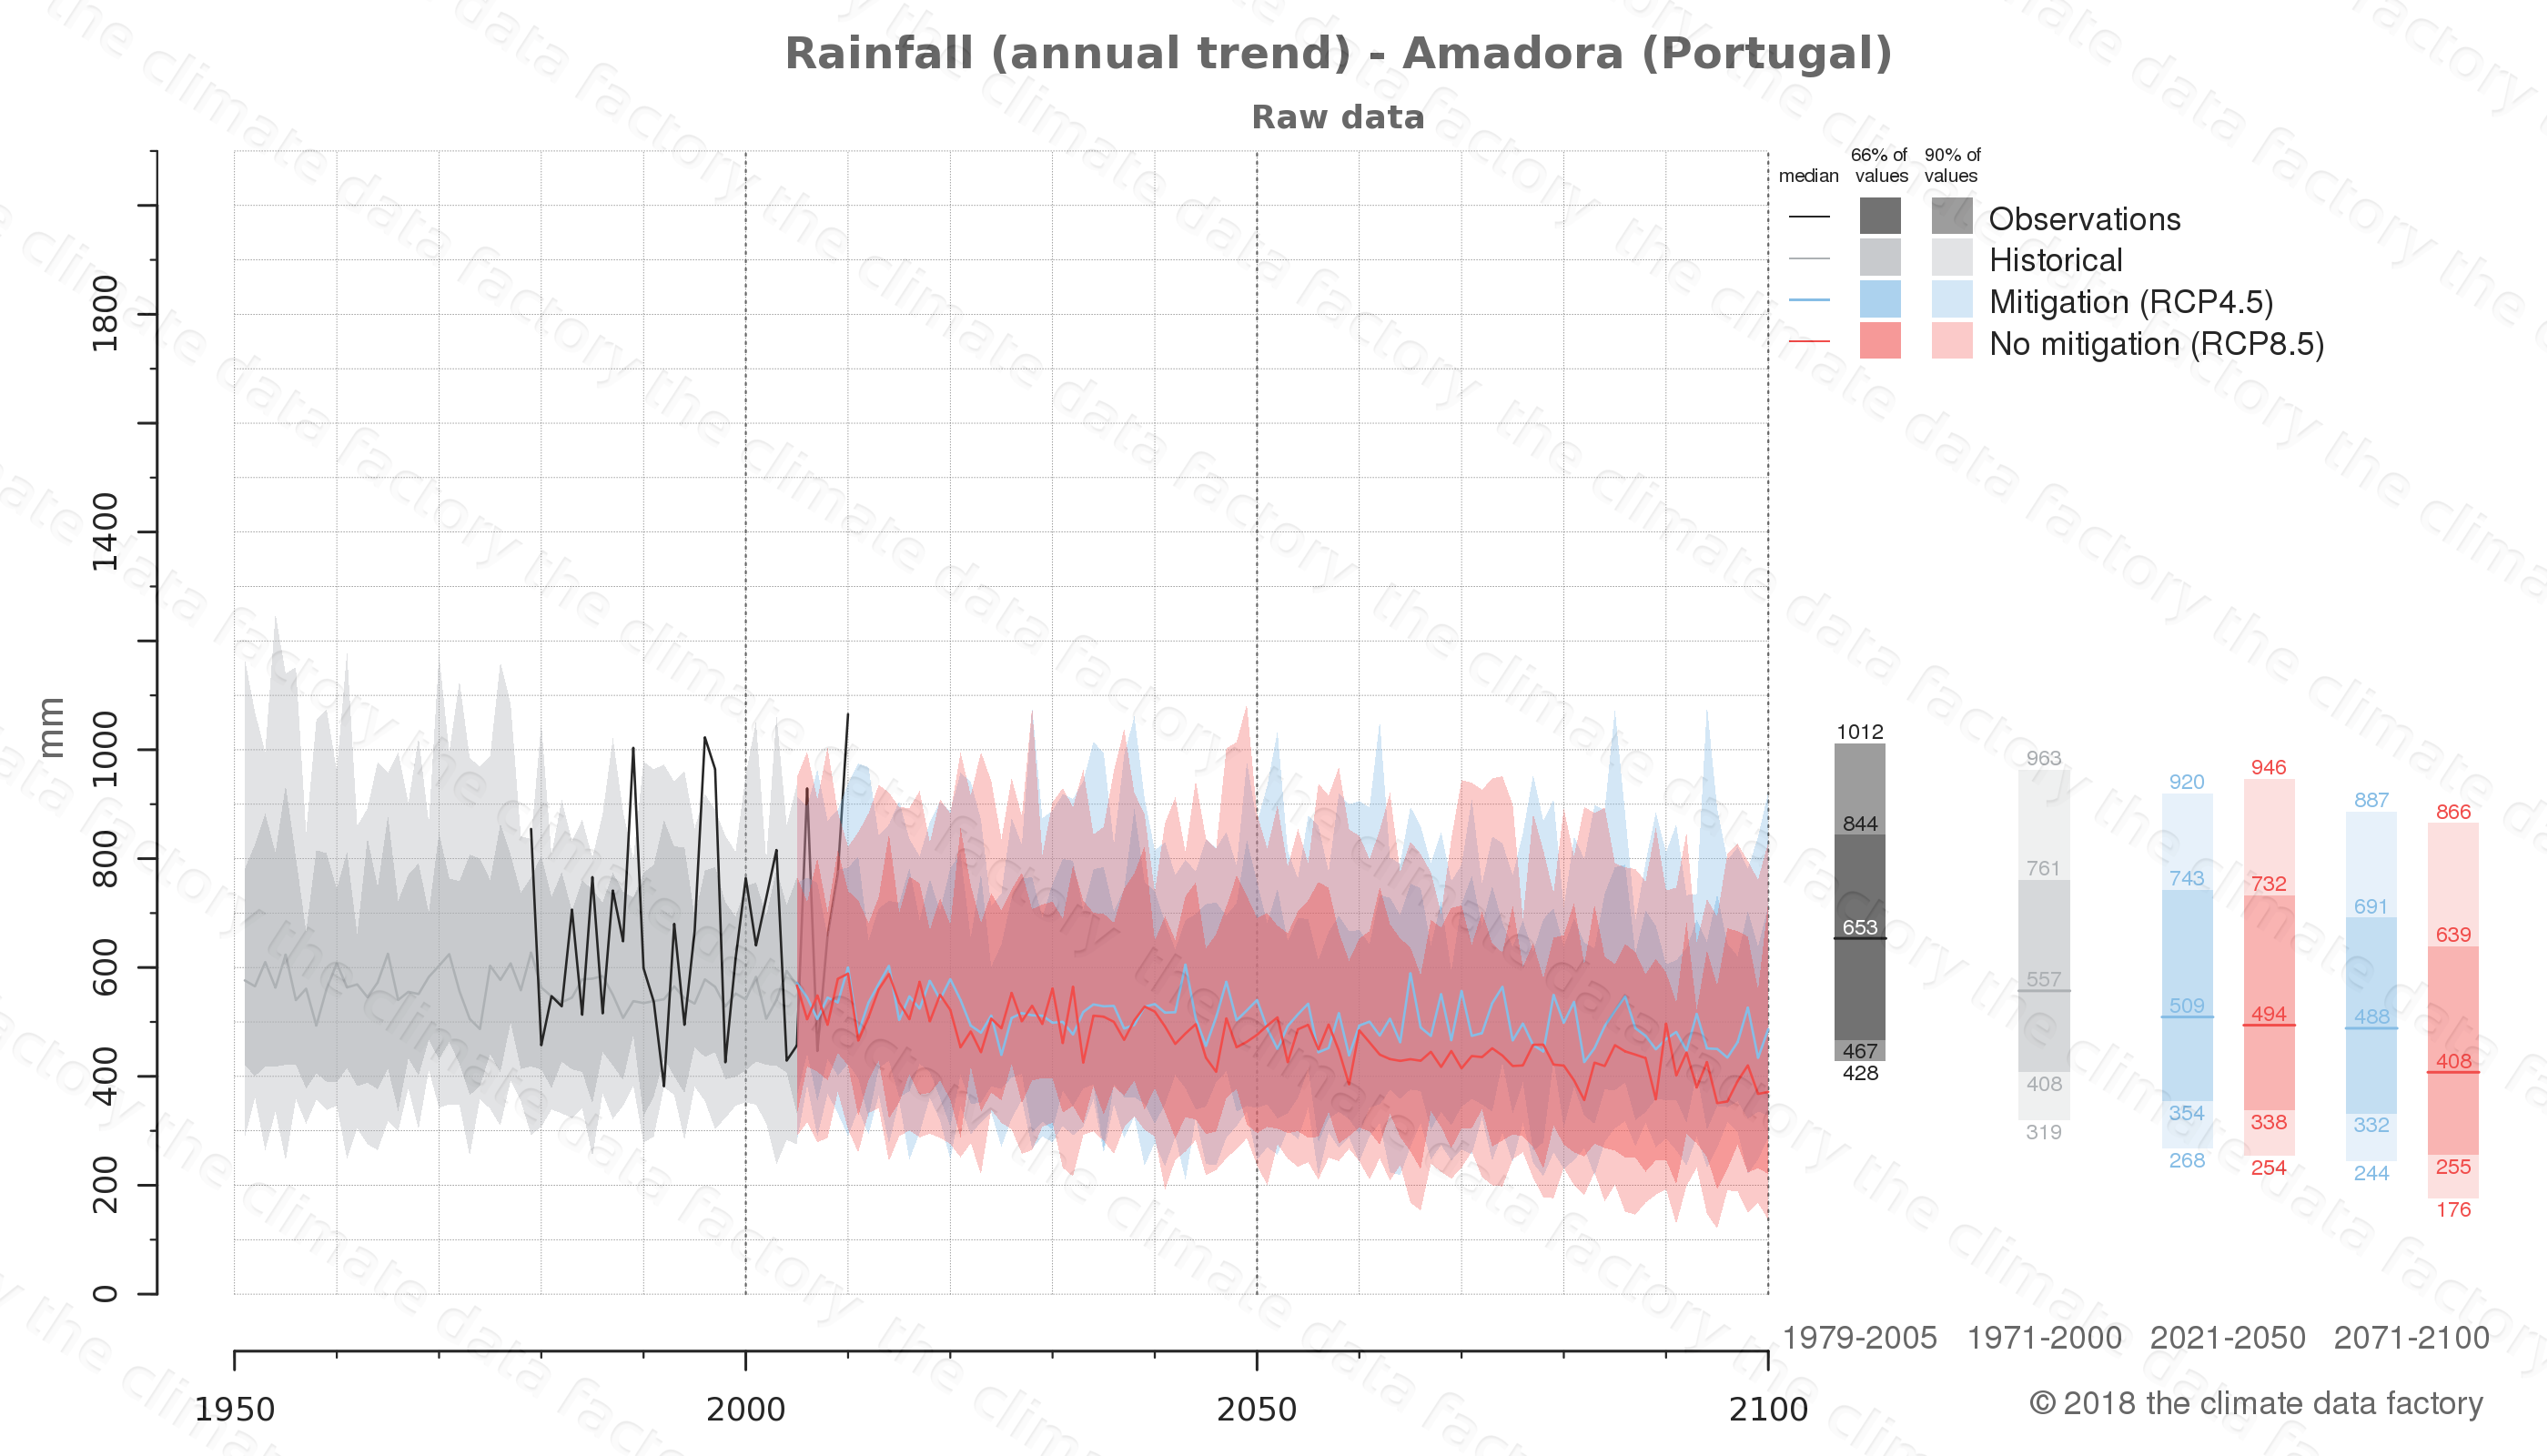 climate change data policy adaptation climate graph city data rainfall amadora portugal